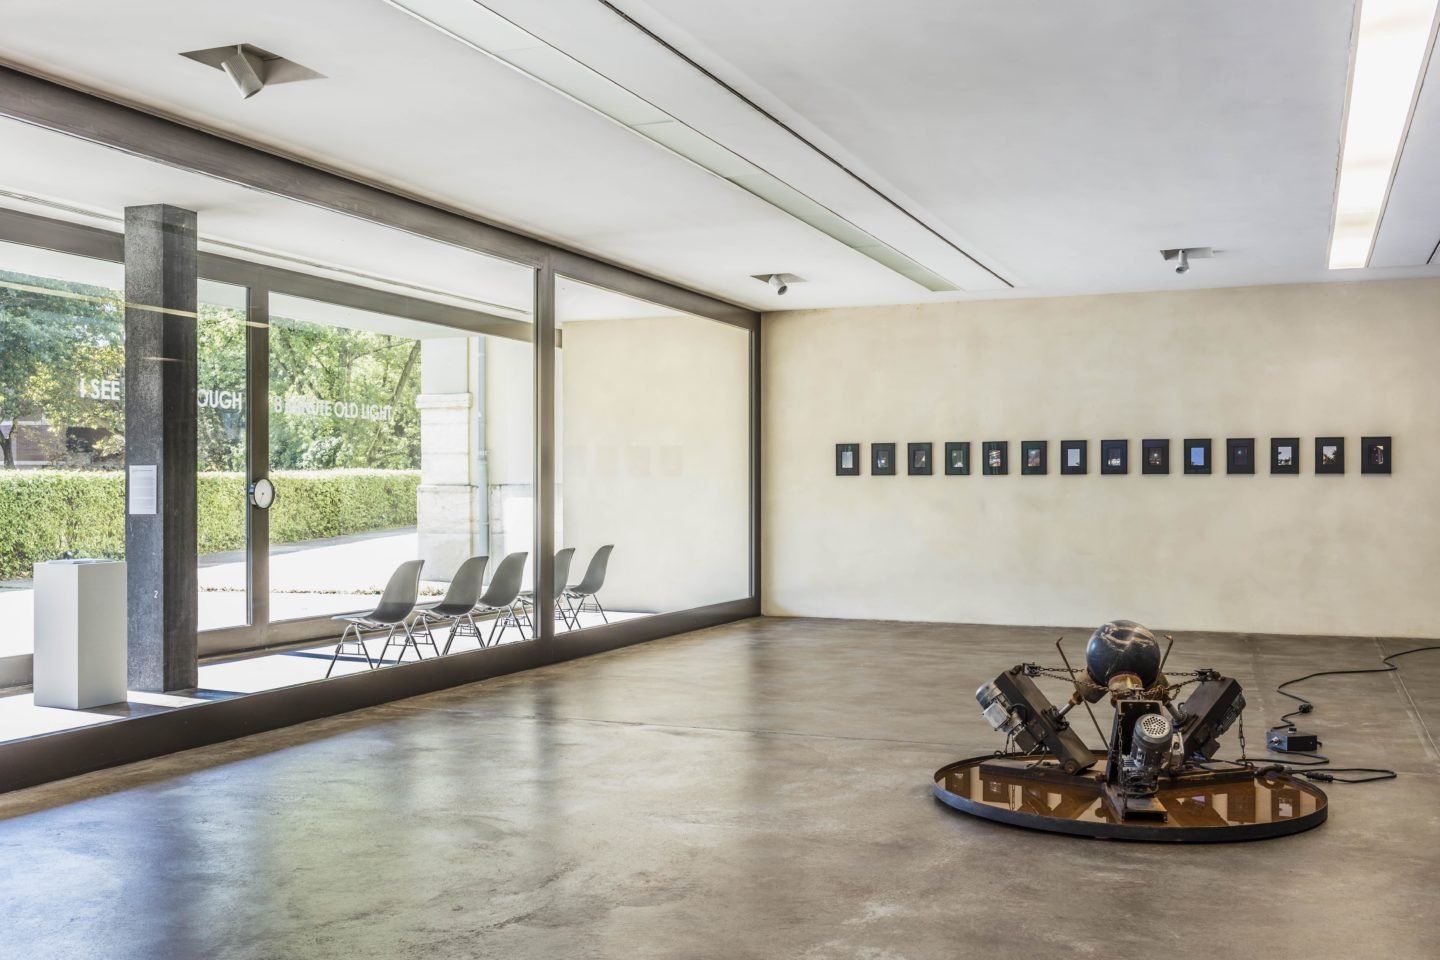 Exhibition View Groupshow «Zeitspuren – The Power of Now / view on Julian Charrière, Weight of Time, 2016 and Stéphanie Saadé, Moongold Series, 2016-18» at PASQUART, Biel/Bienne, 2018 / Photo: Gunnar Meier / Courtesy: Günther Vogt and Courtesy Marfa' Projects